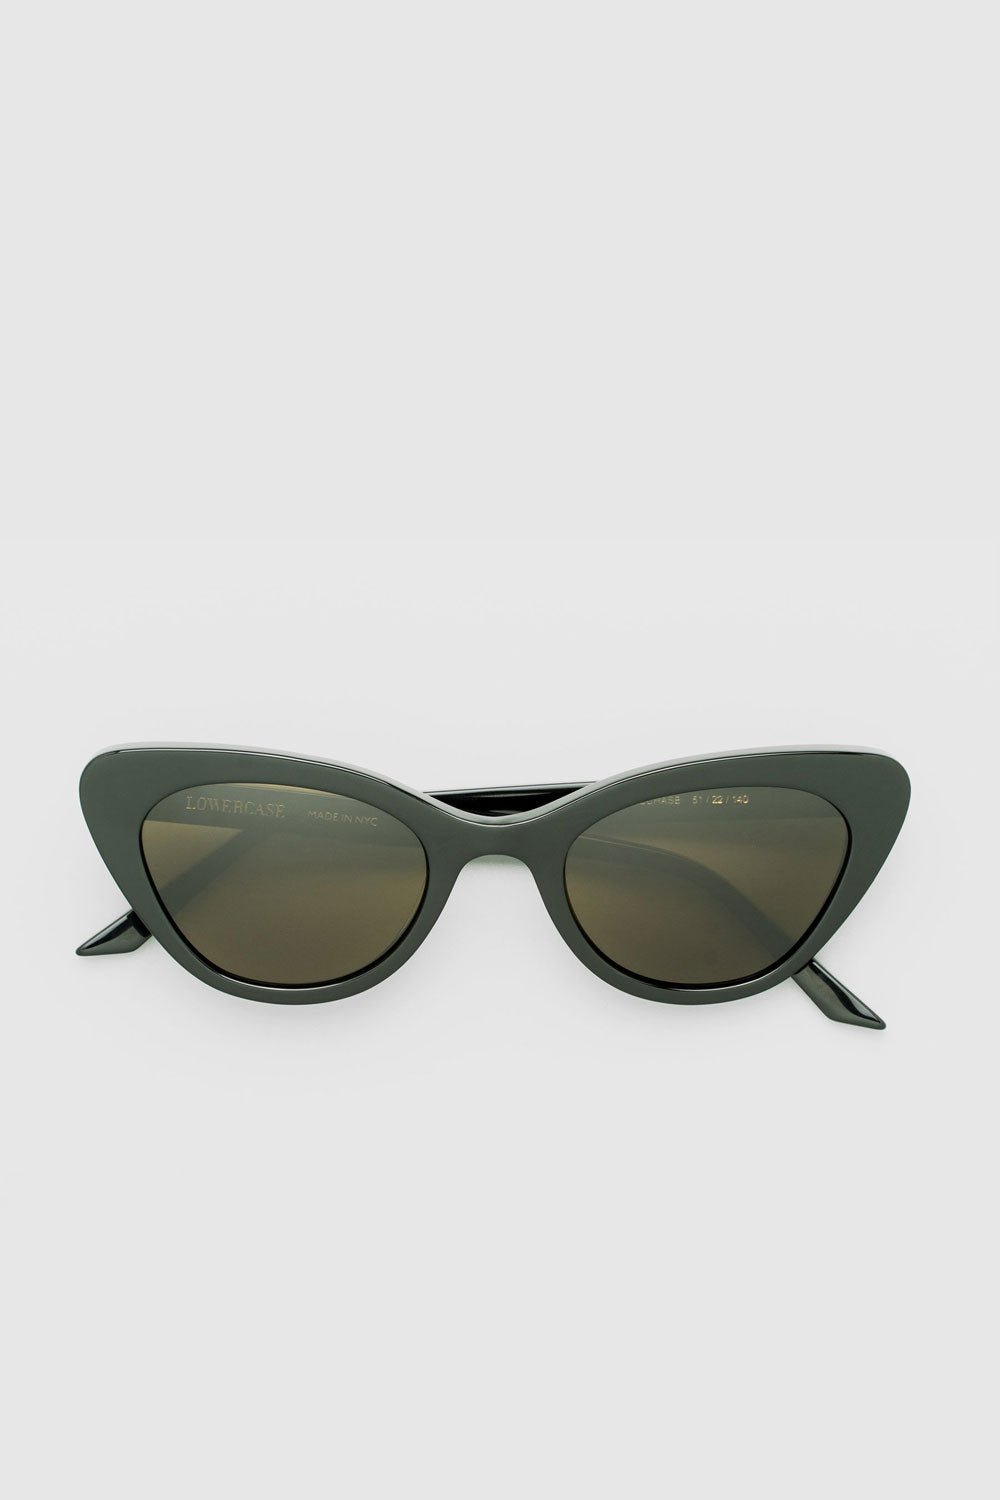 Steeplechase Sunglasses in Black